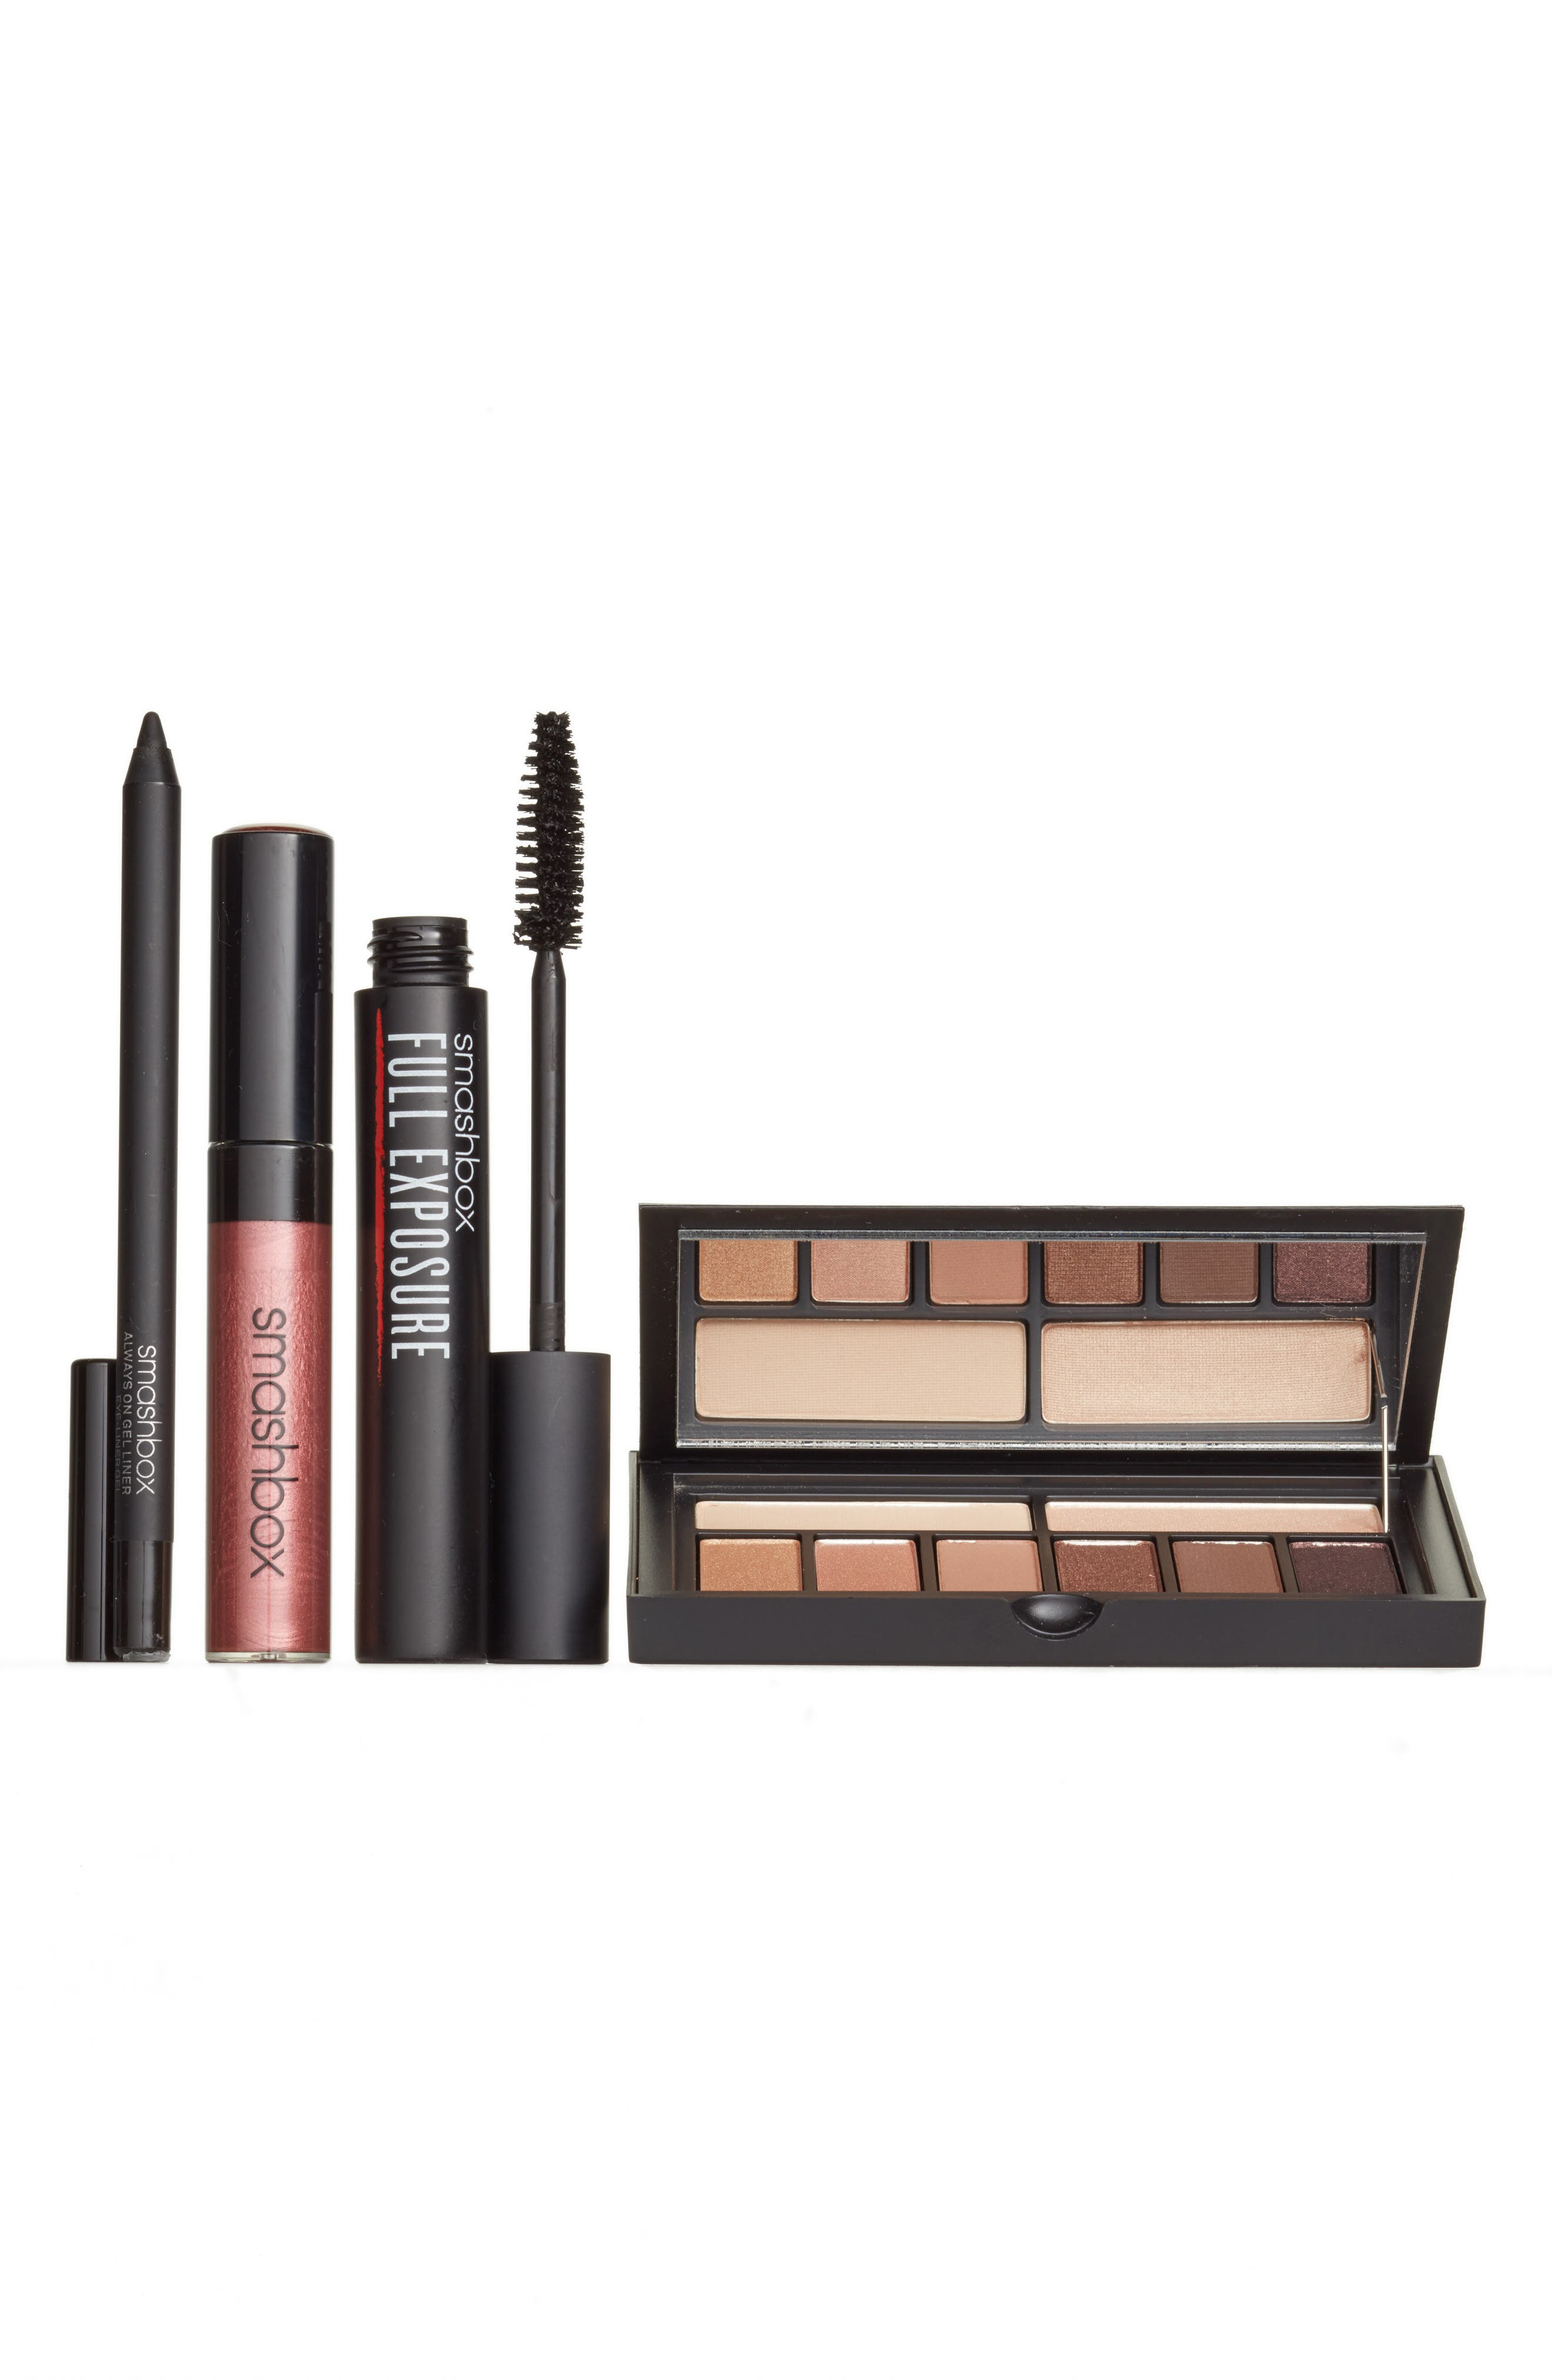 Smashbox Light Your Look Kit ($94 Value)